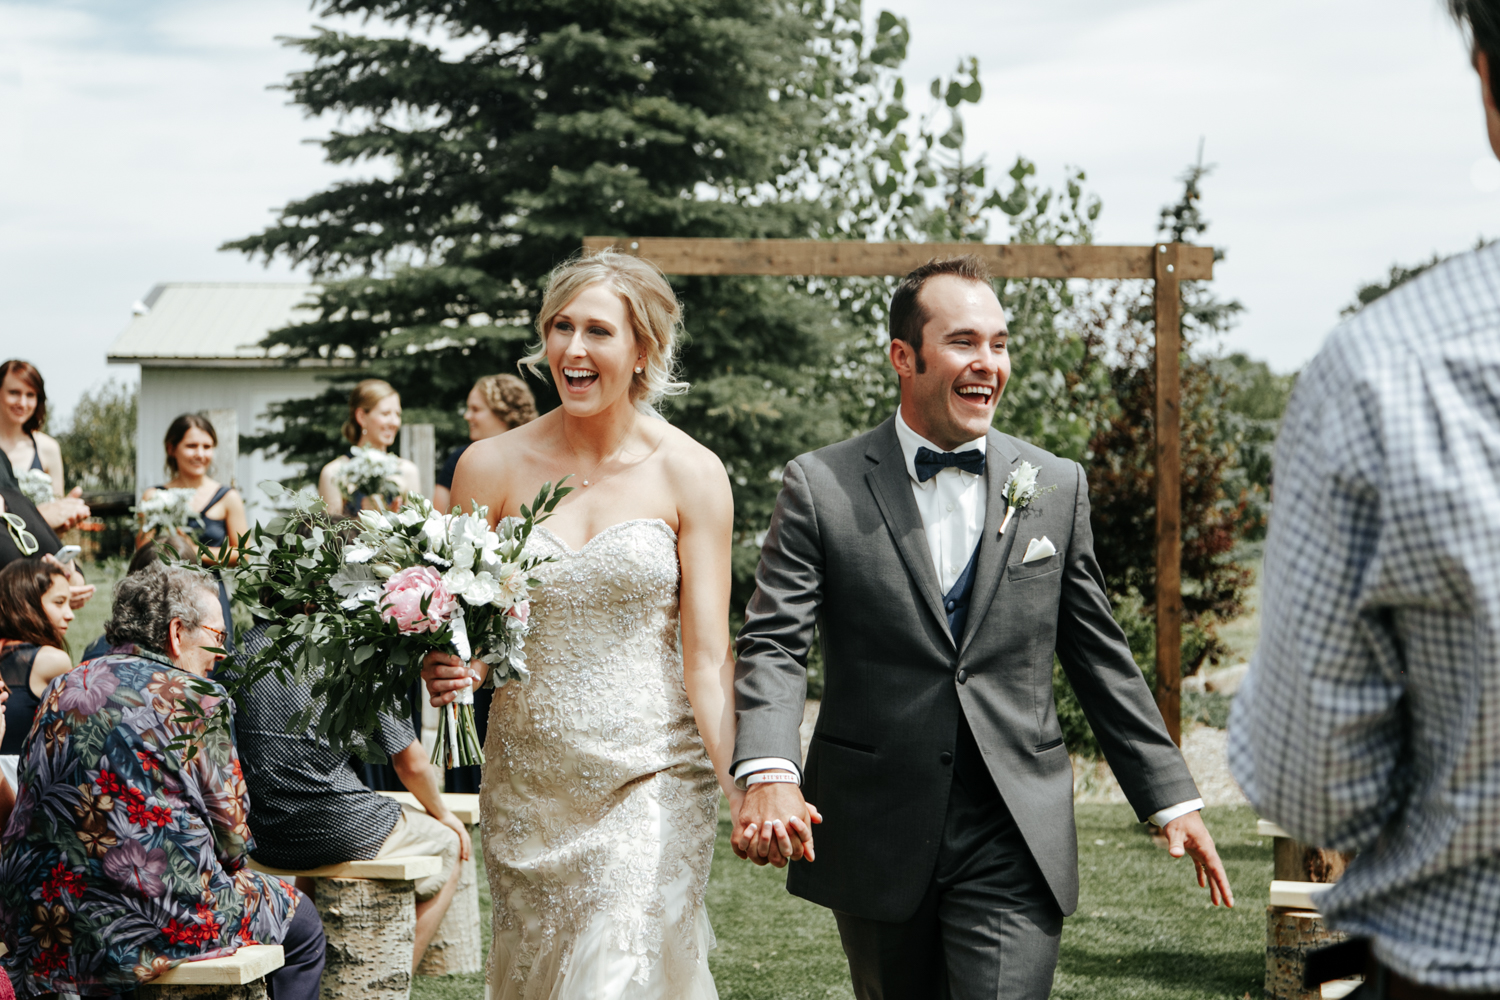 lethbridge-photographer-readymade-community-centre-wedding-coaldale-bailey-joel-picture-image-photo-28.jpg